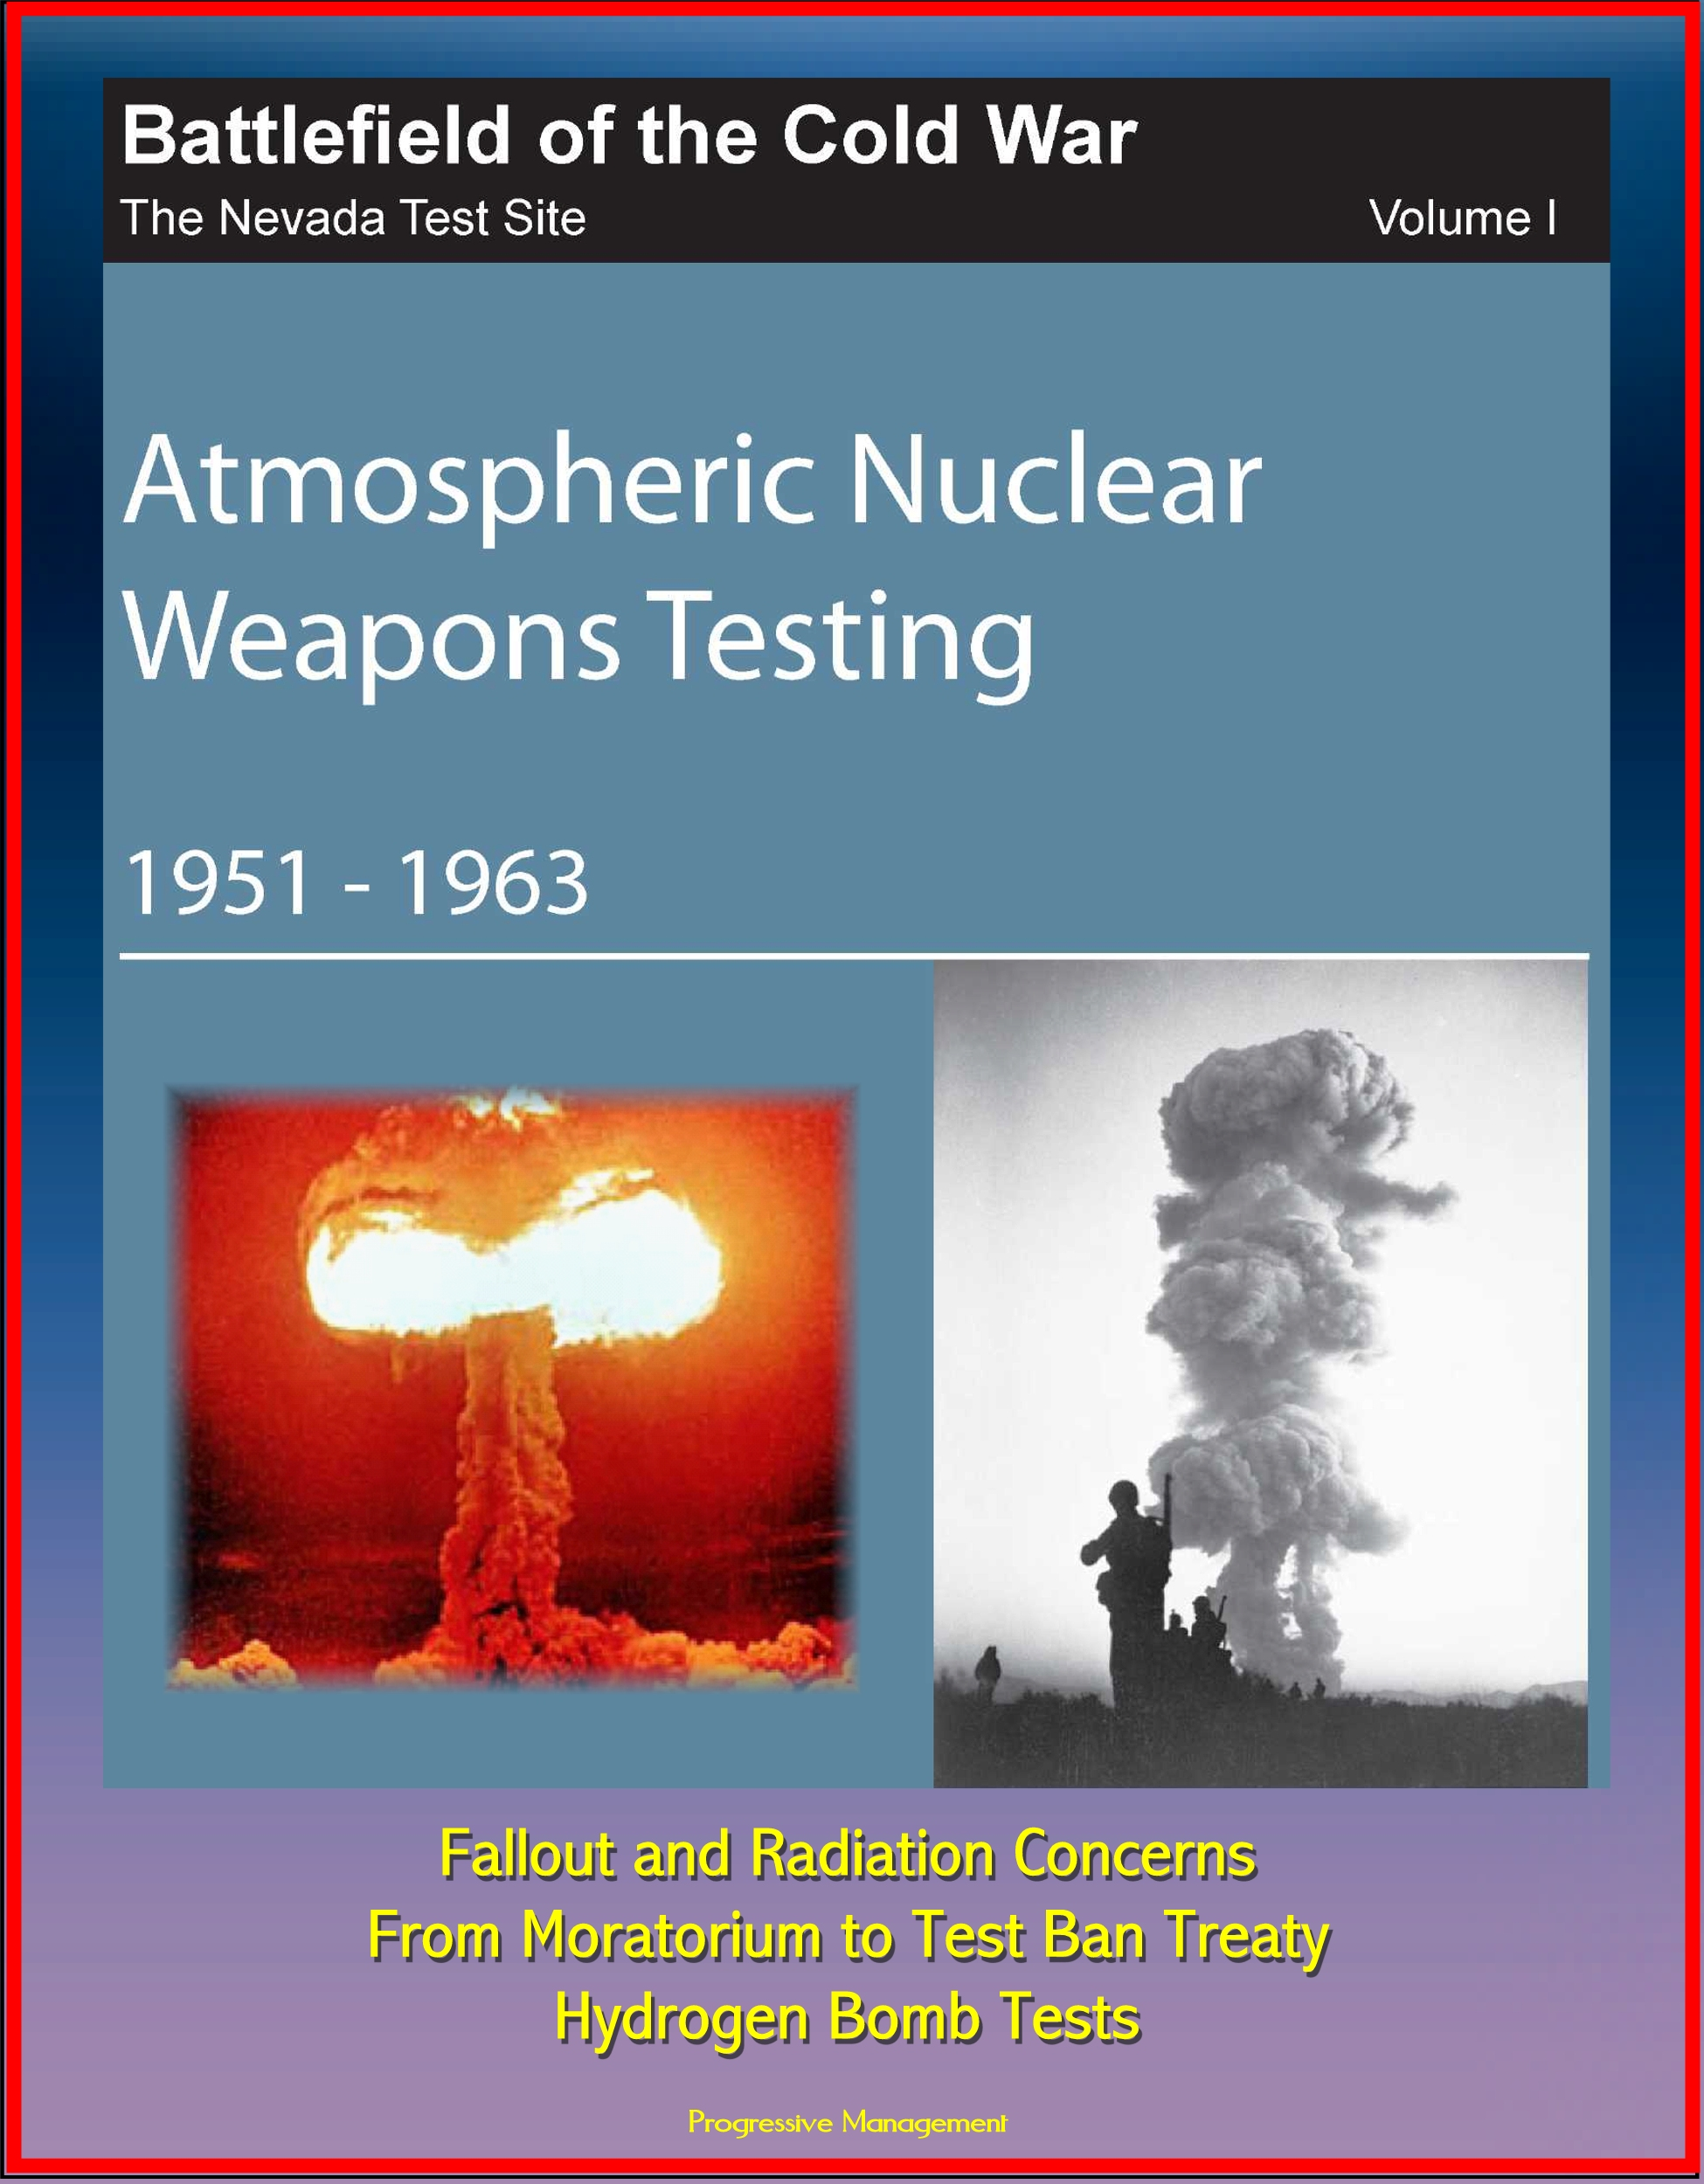 weapons of the cold war A key feature of the cold war was the stockpiling of large numbers of nuclear weapons by both sides this reached a peak in 1986, at which time the united states possessed approximately 23,000.